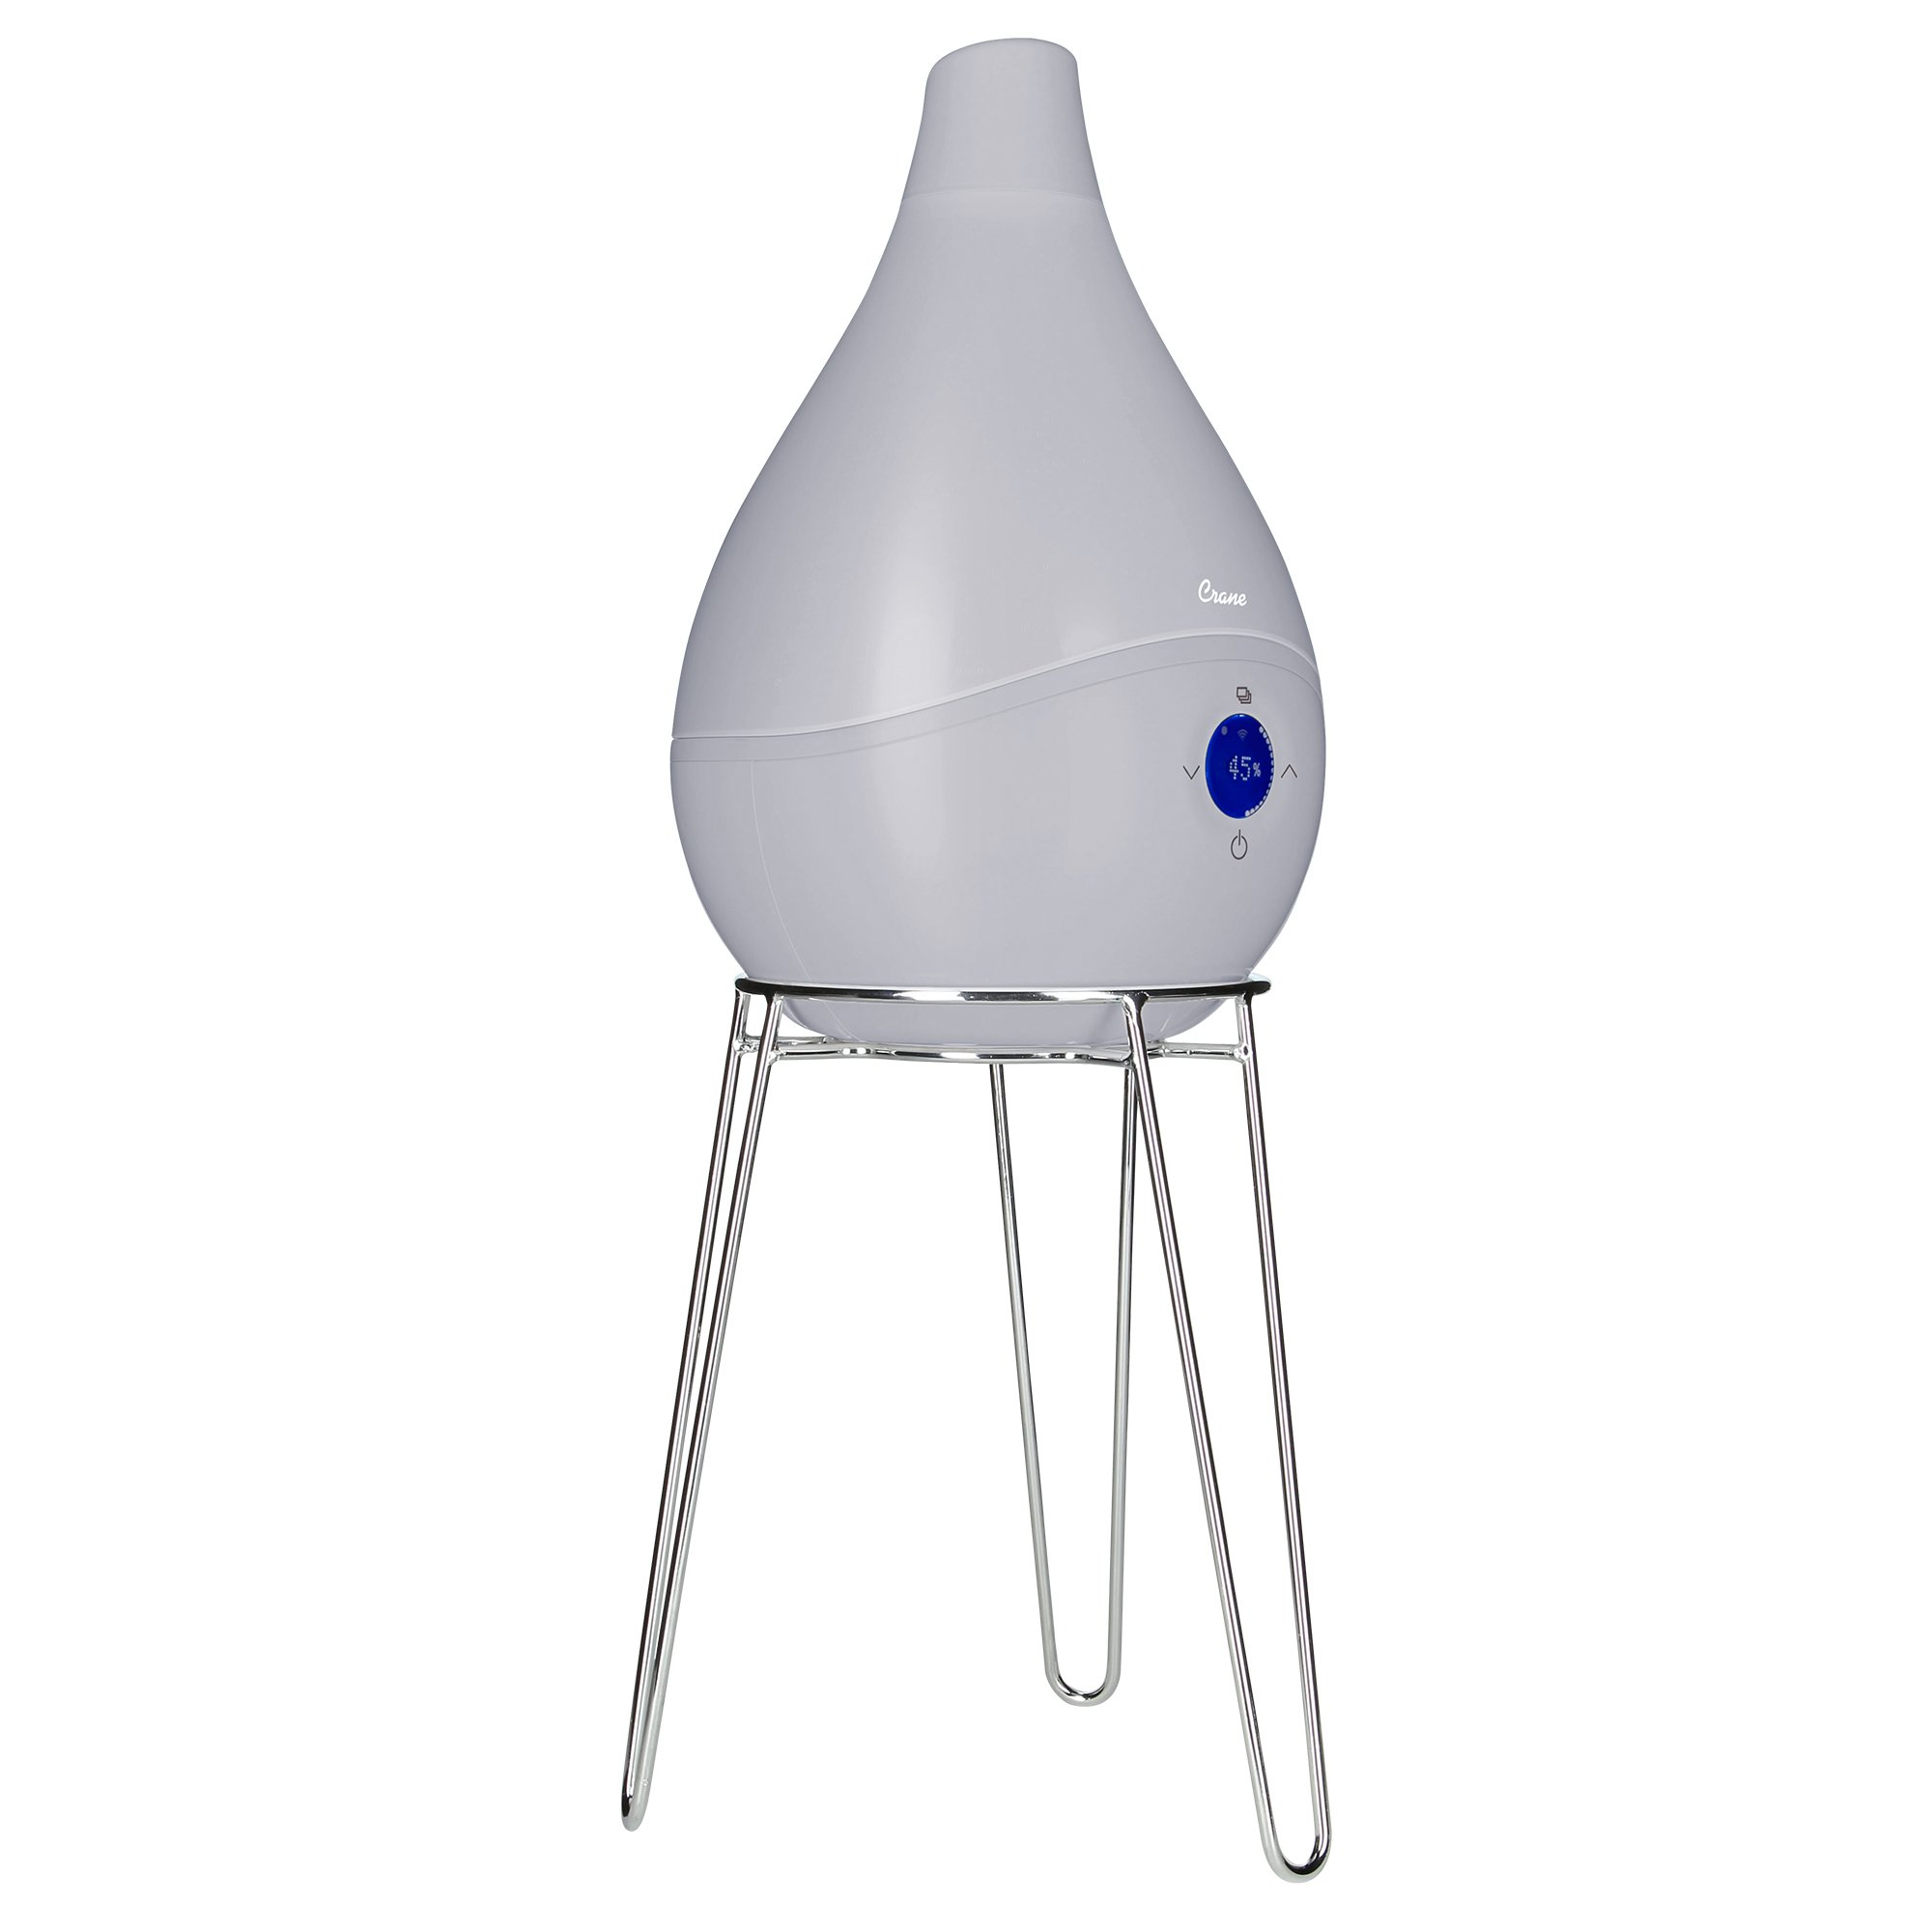 Crane USA Humidifiers - Grey Smart Drop Wifi Ultrasonic Cool Mist Humidifier - 1.5 Gallon Adjustable Mist Output Automatic Shut-off Whisper-Quiet Operation for Home Bedroom Office Kids & Baby Nursery